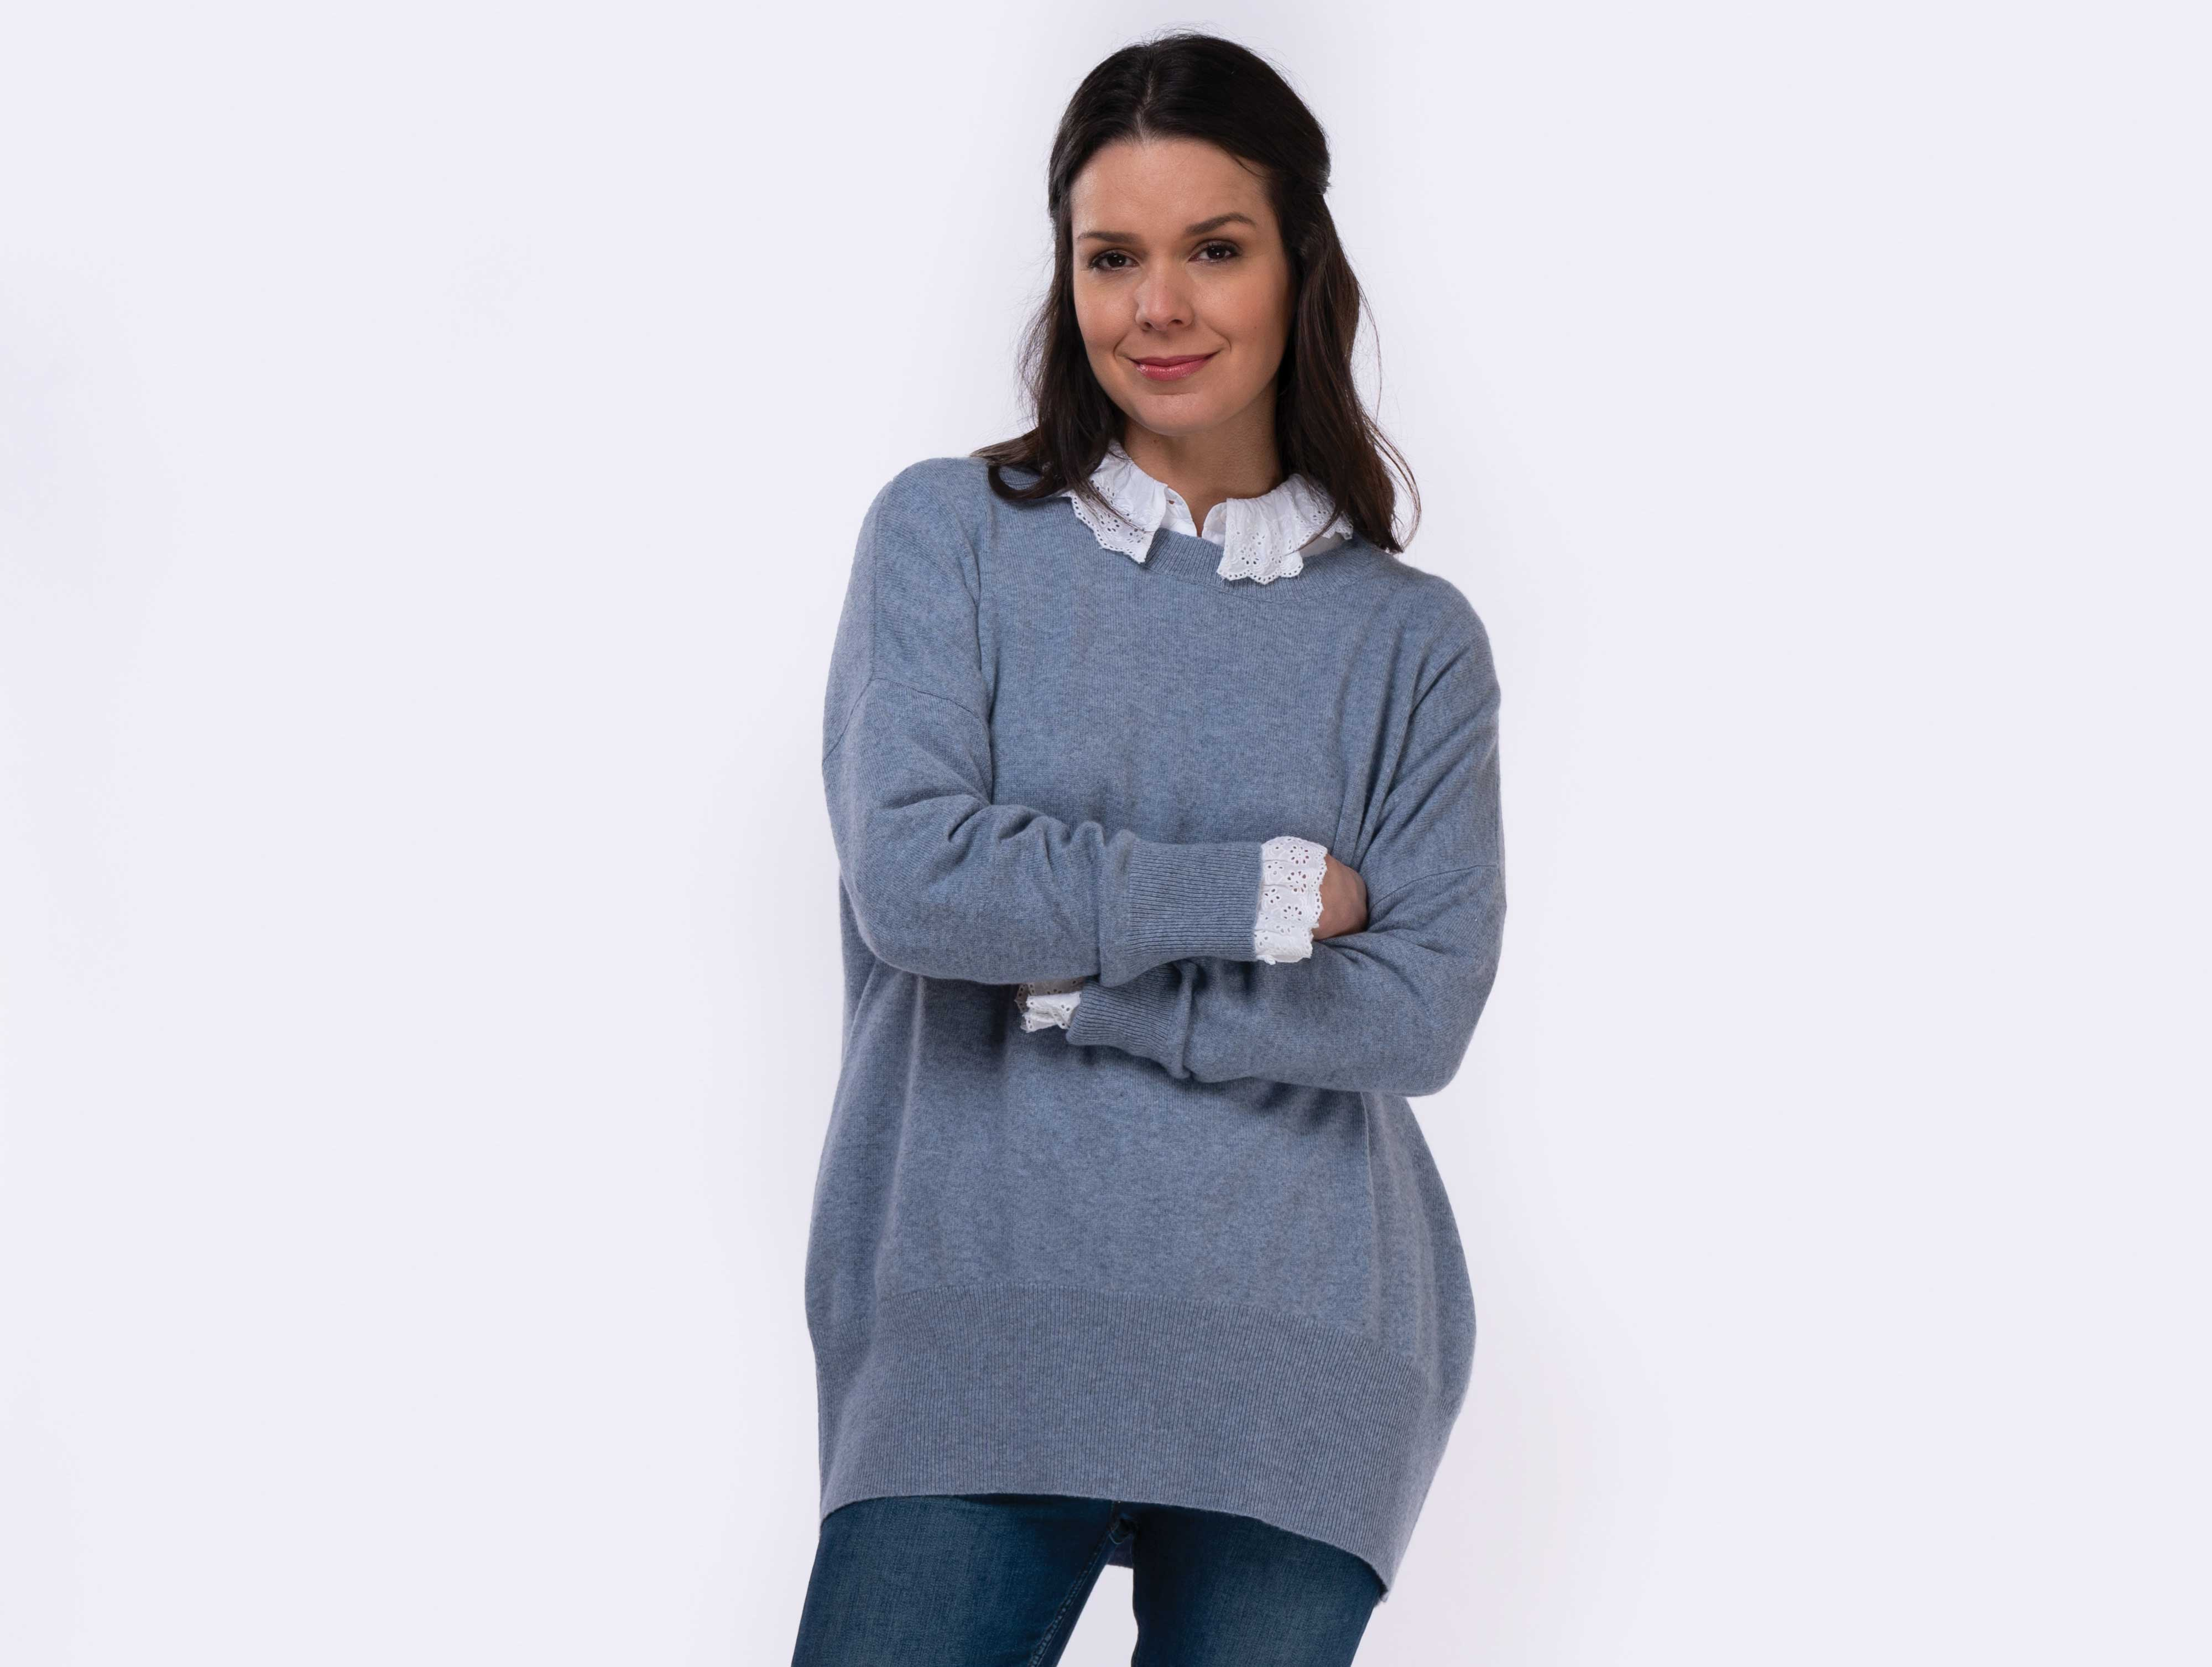 frill collar and cuff shirt worn with blue mist oversized cashmere jumper